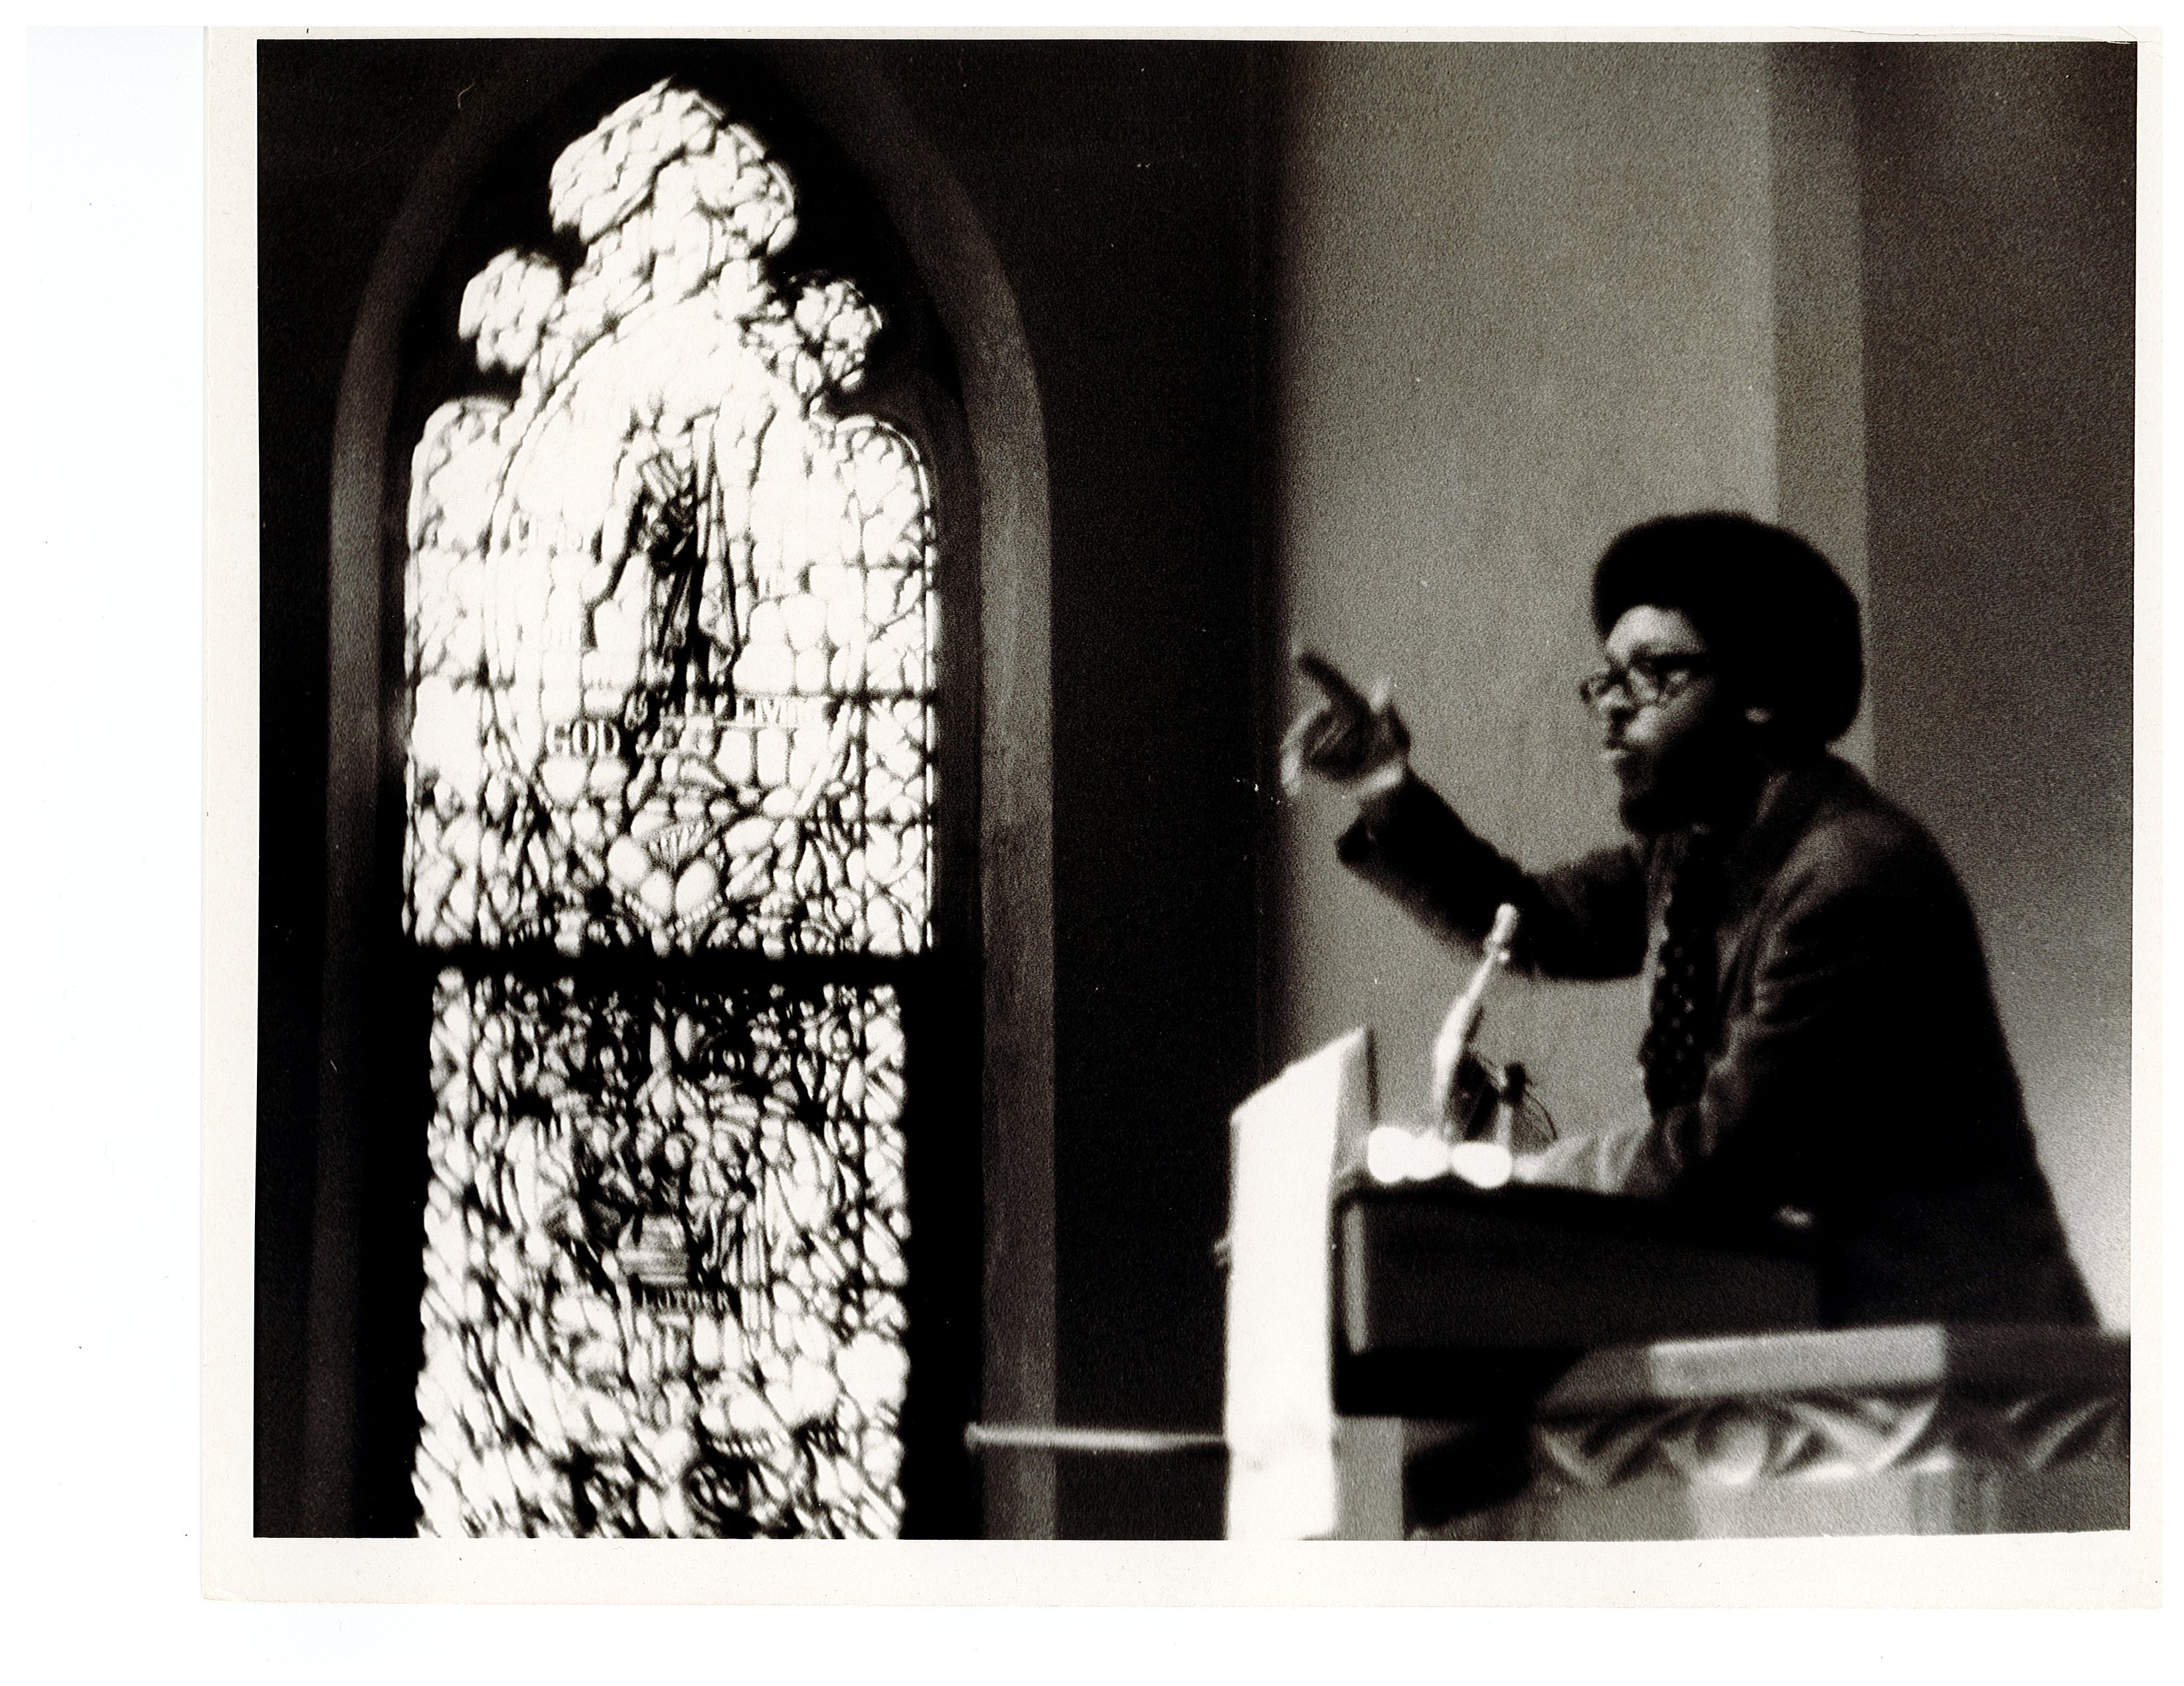 essays by james cone Critical essay  in college i wrote a paper on the work of james cone in which i  barely grasped the profoundness of his thought my religion.